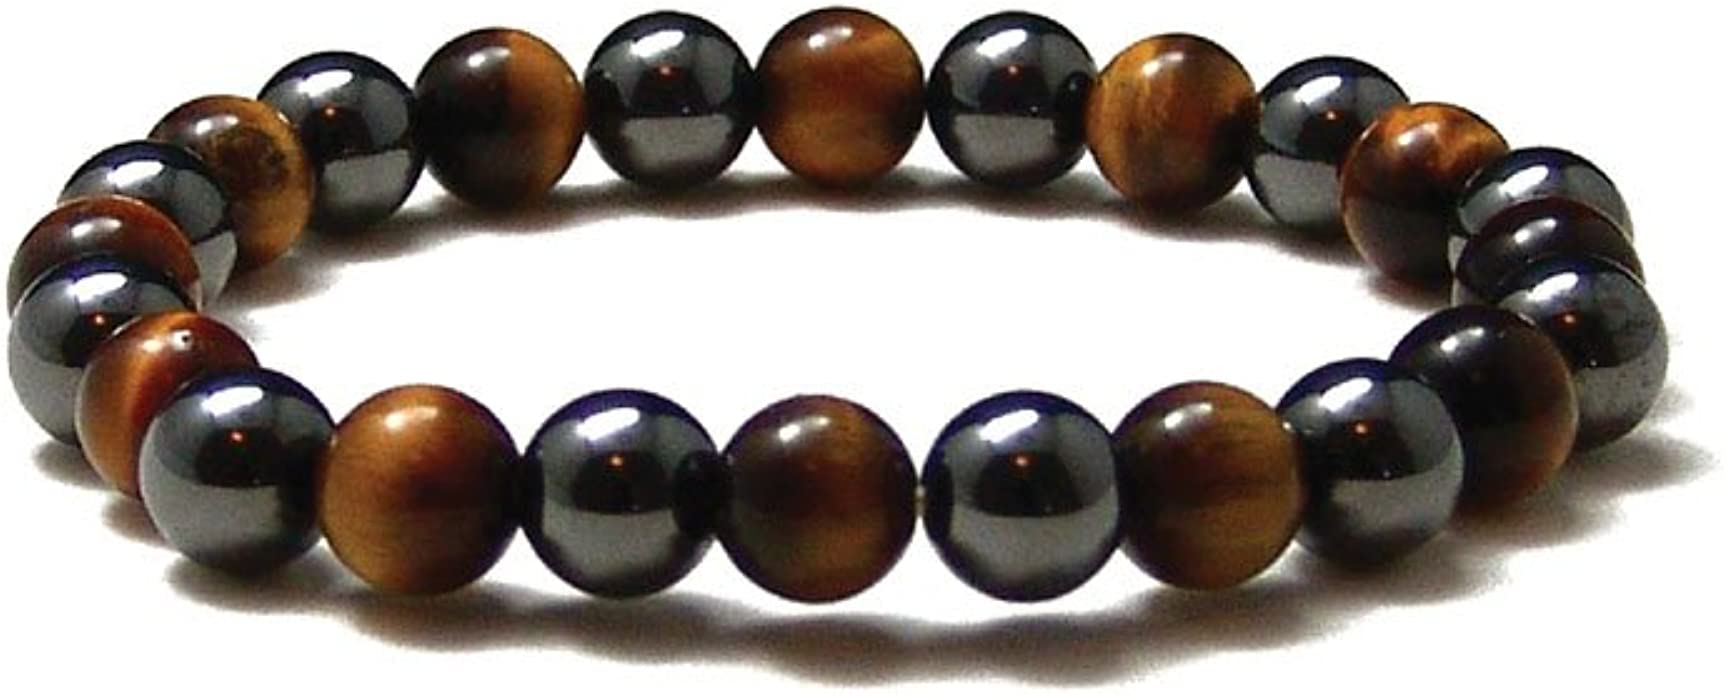 KIOMOY Stainless Steel Fashion Jewelry Natural Tiger Eye Obsidian Mens//Womens Bracelet 10 mm Bead String